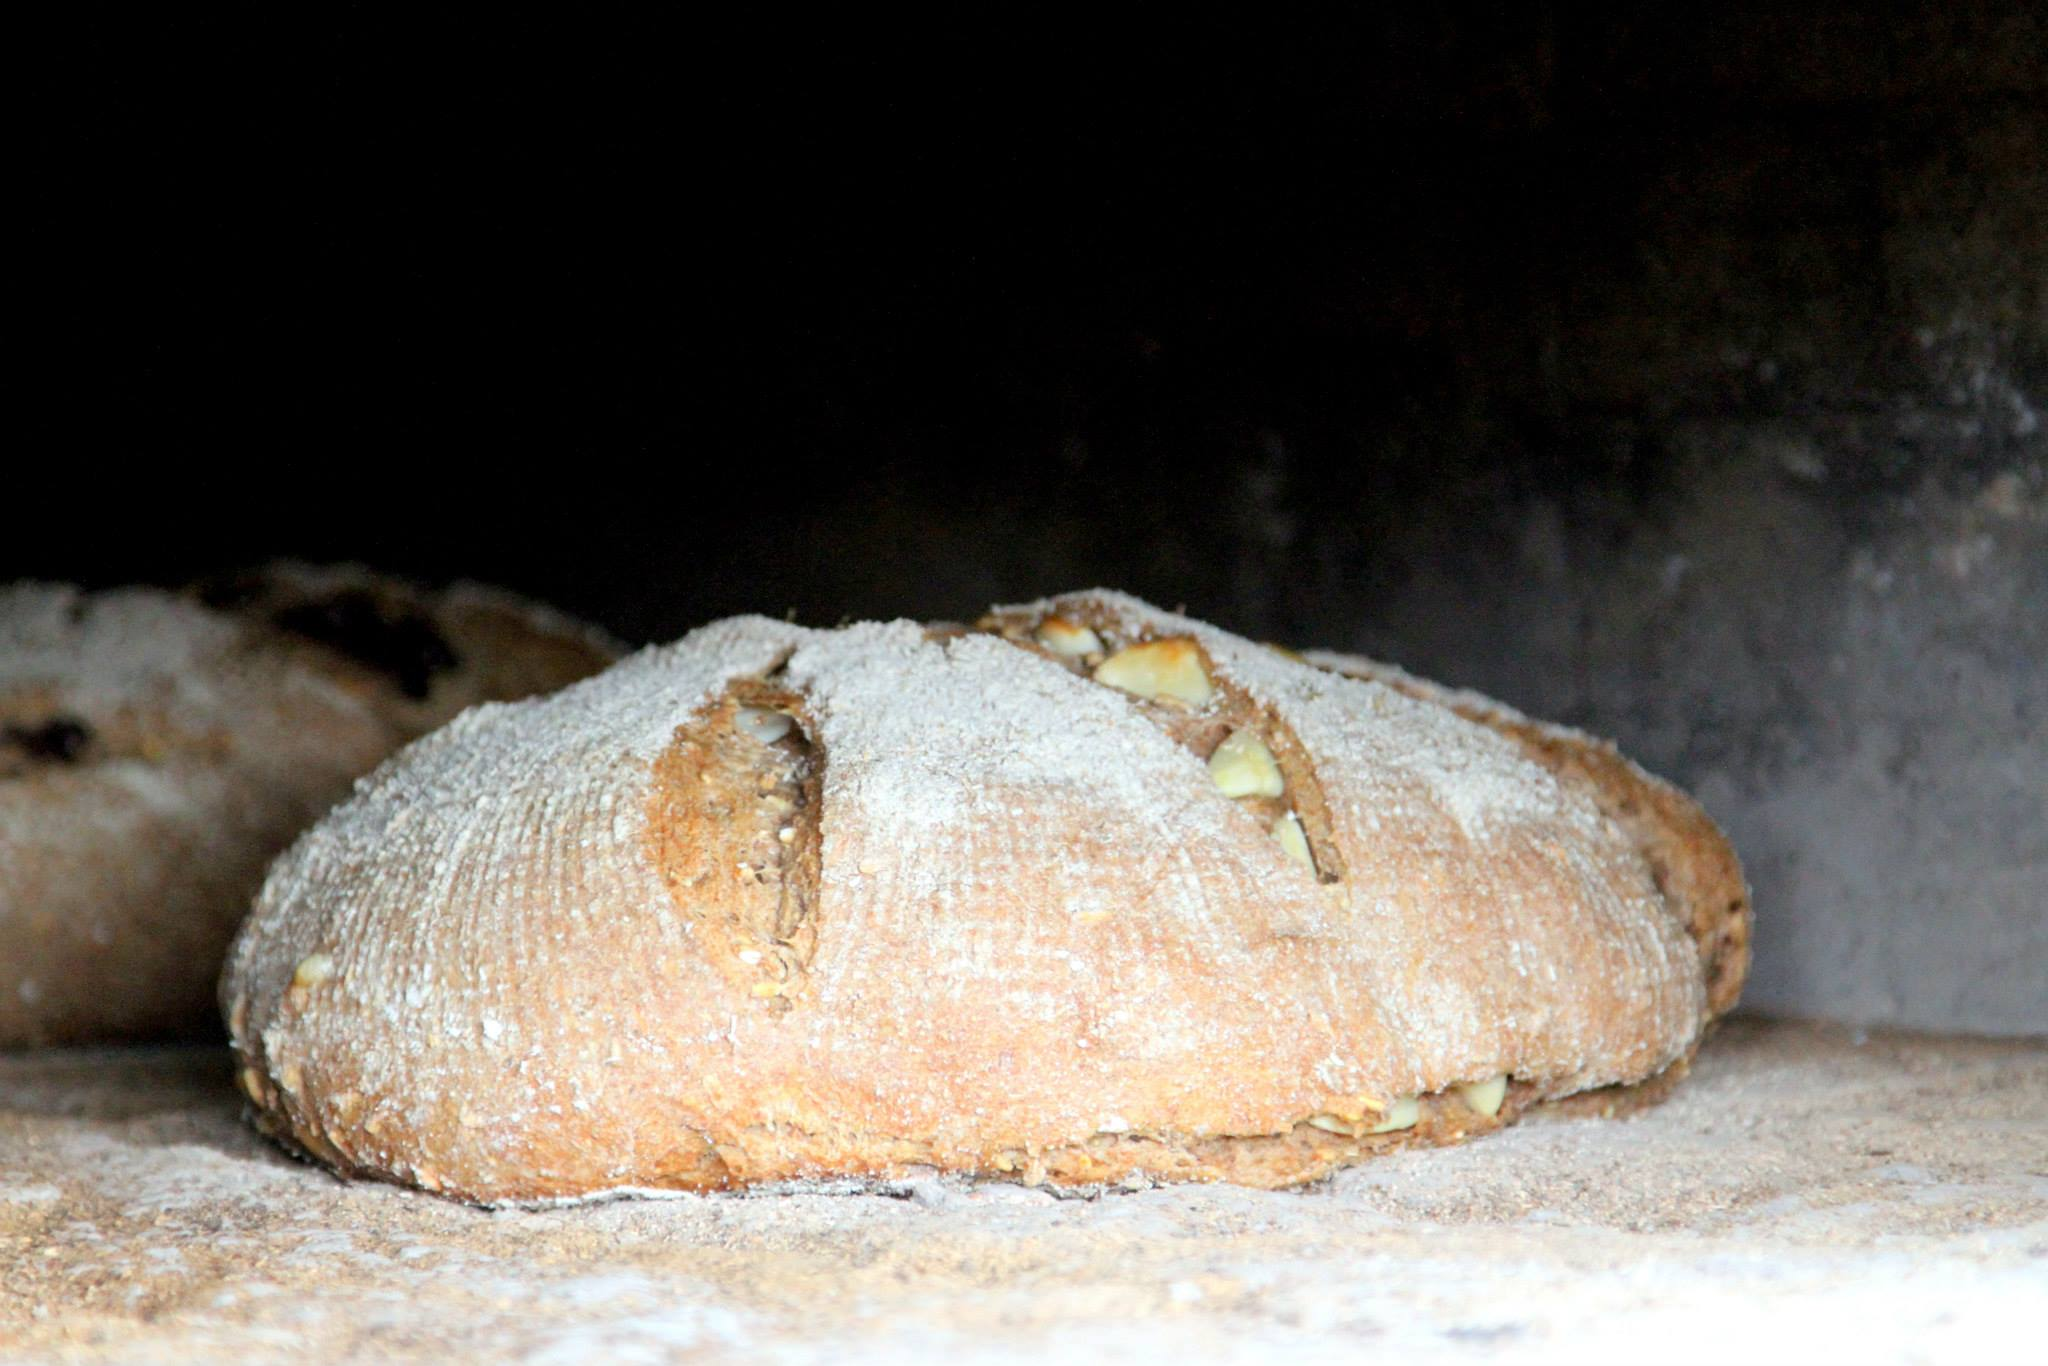 Bread as it was baking in the wood-fired oven.